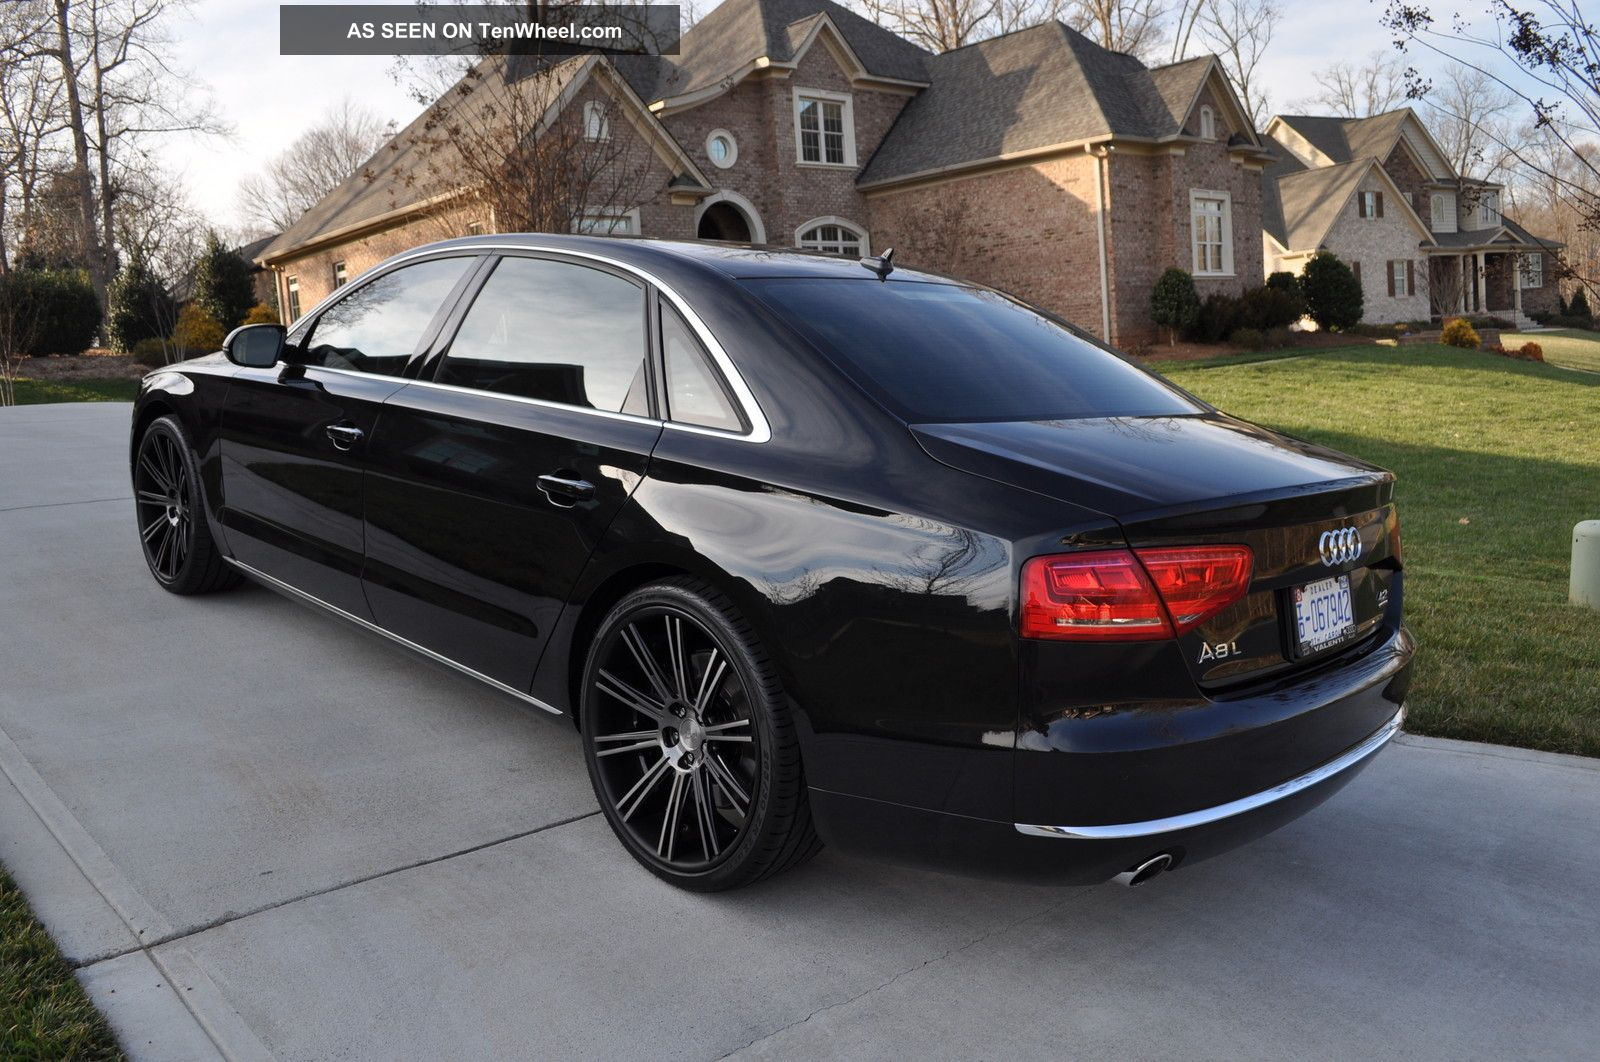 2012 Audi A8 L Best On Ebay 7000 00 Wheels Celebrity Status